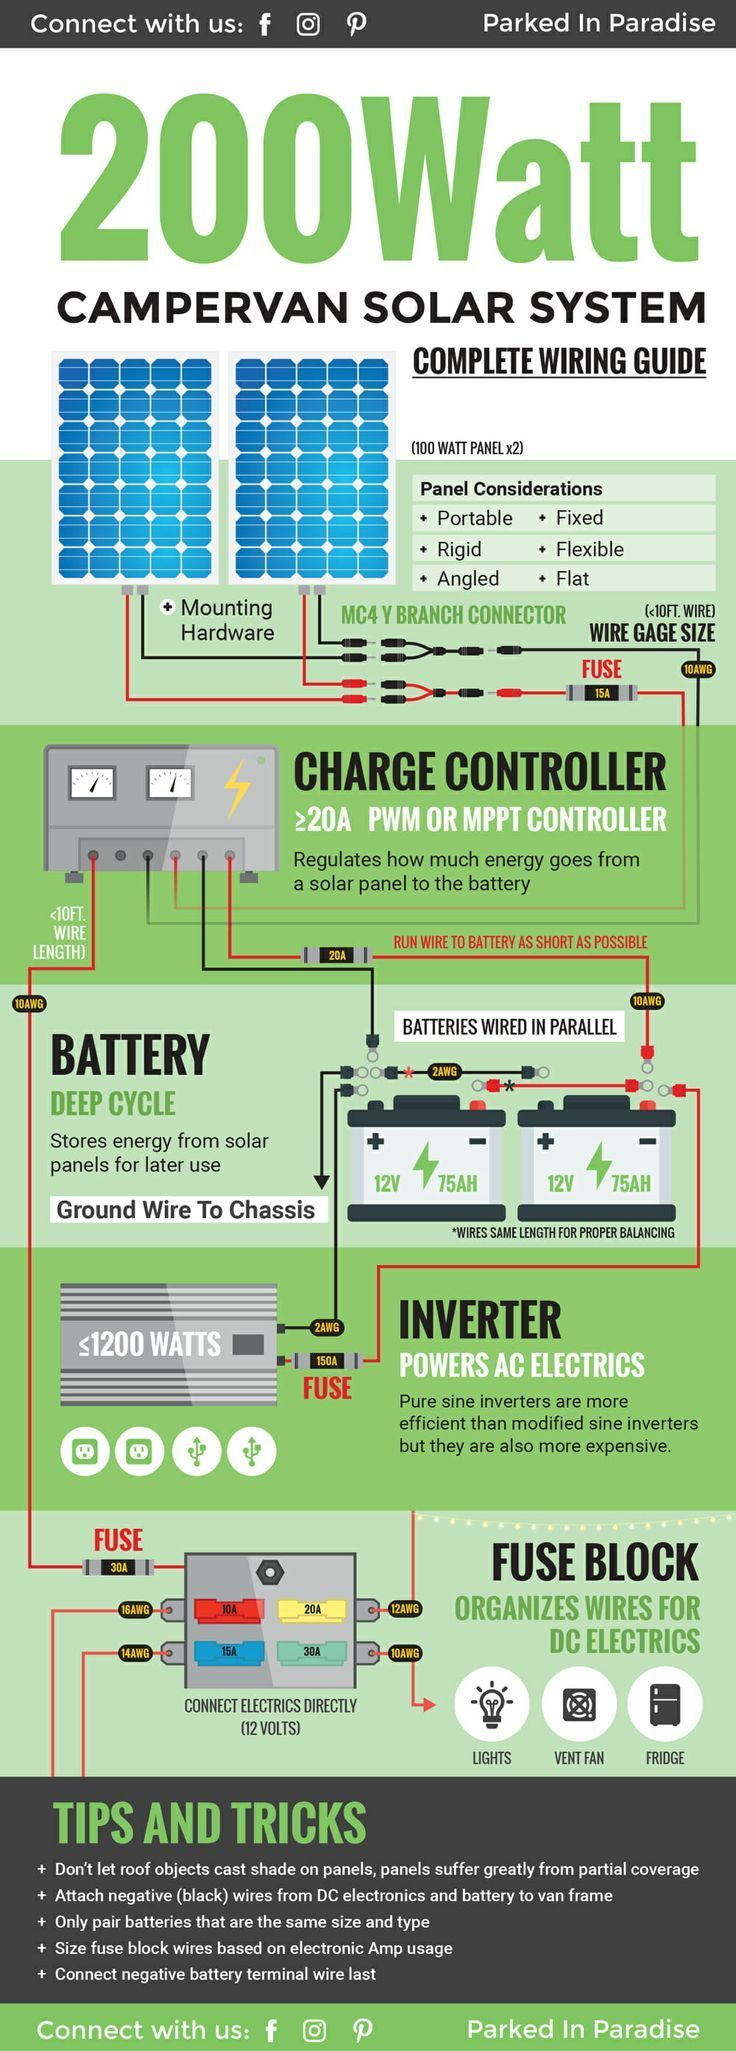 complete diy wiring guide for a 200 watt solar panel system  perfect for a  campervan